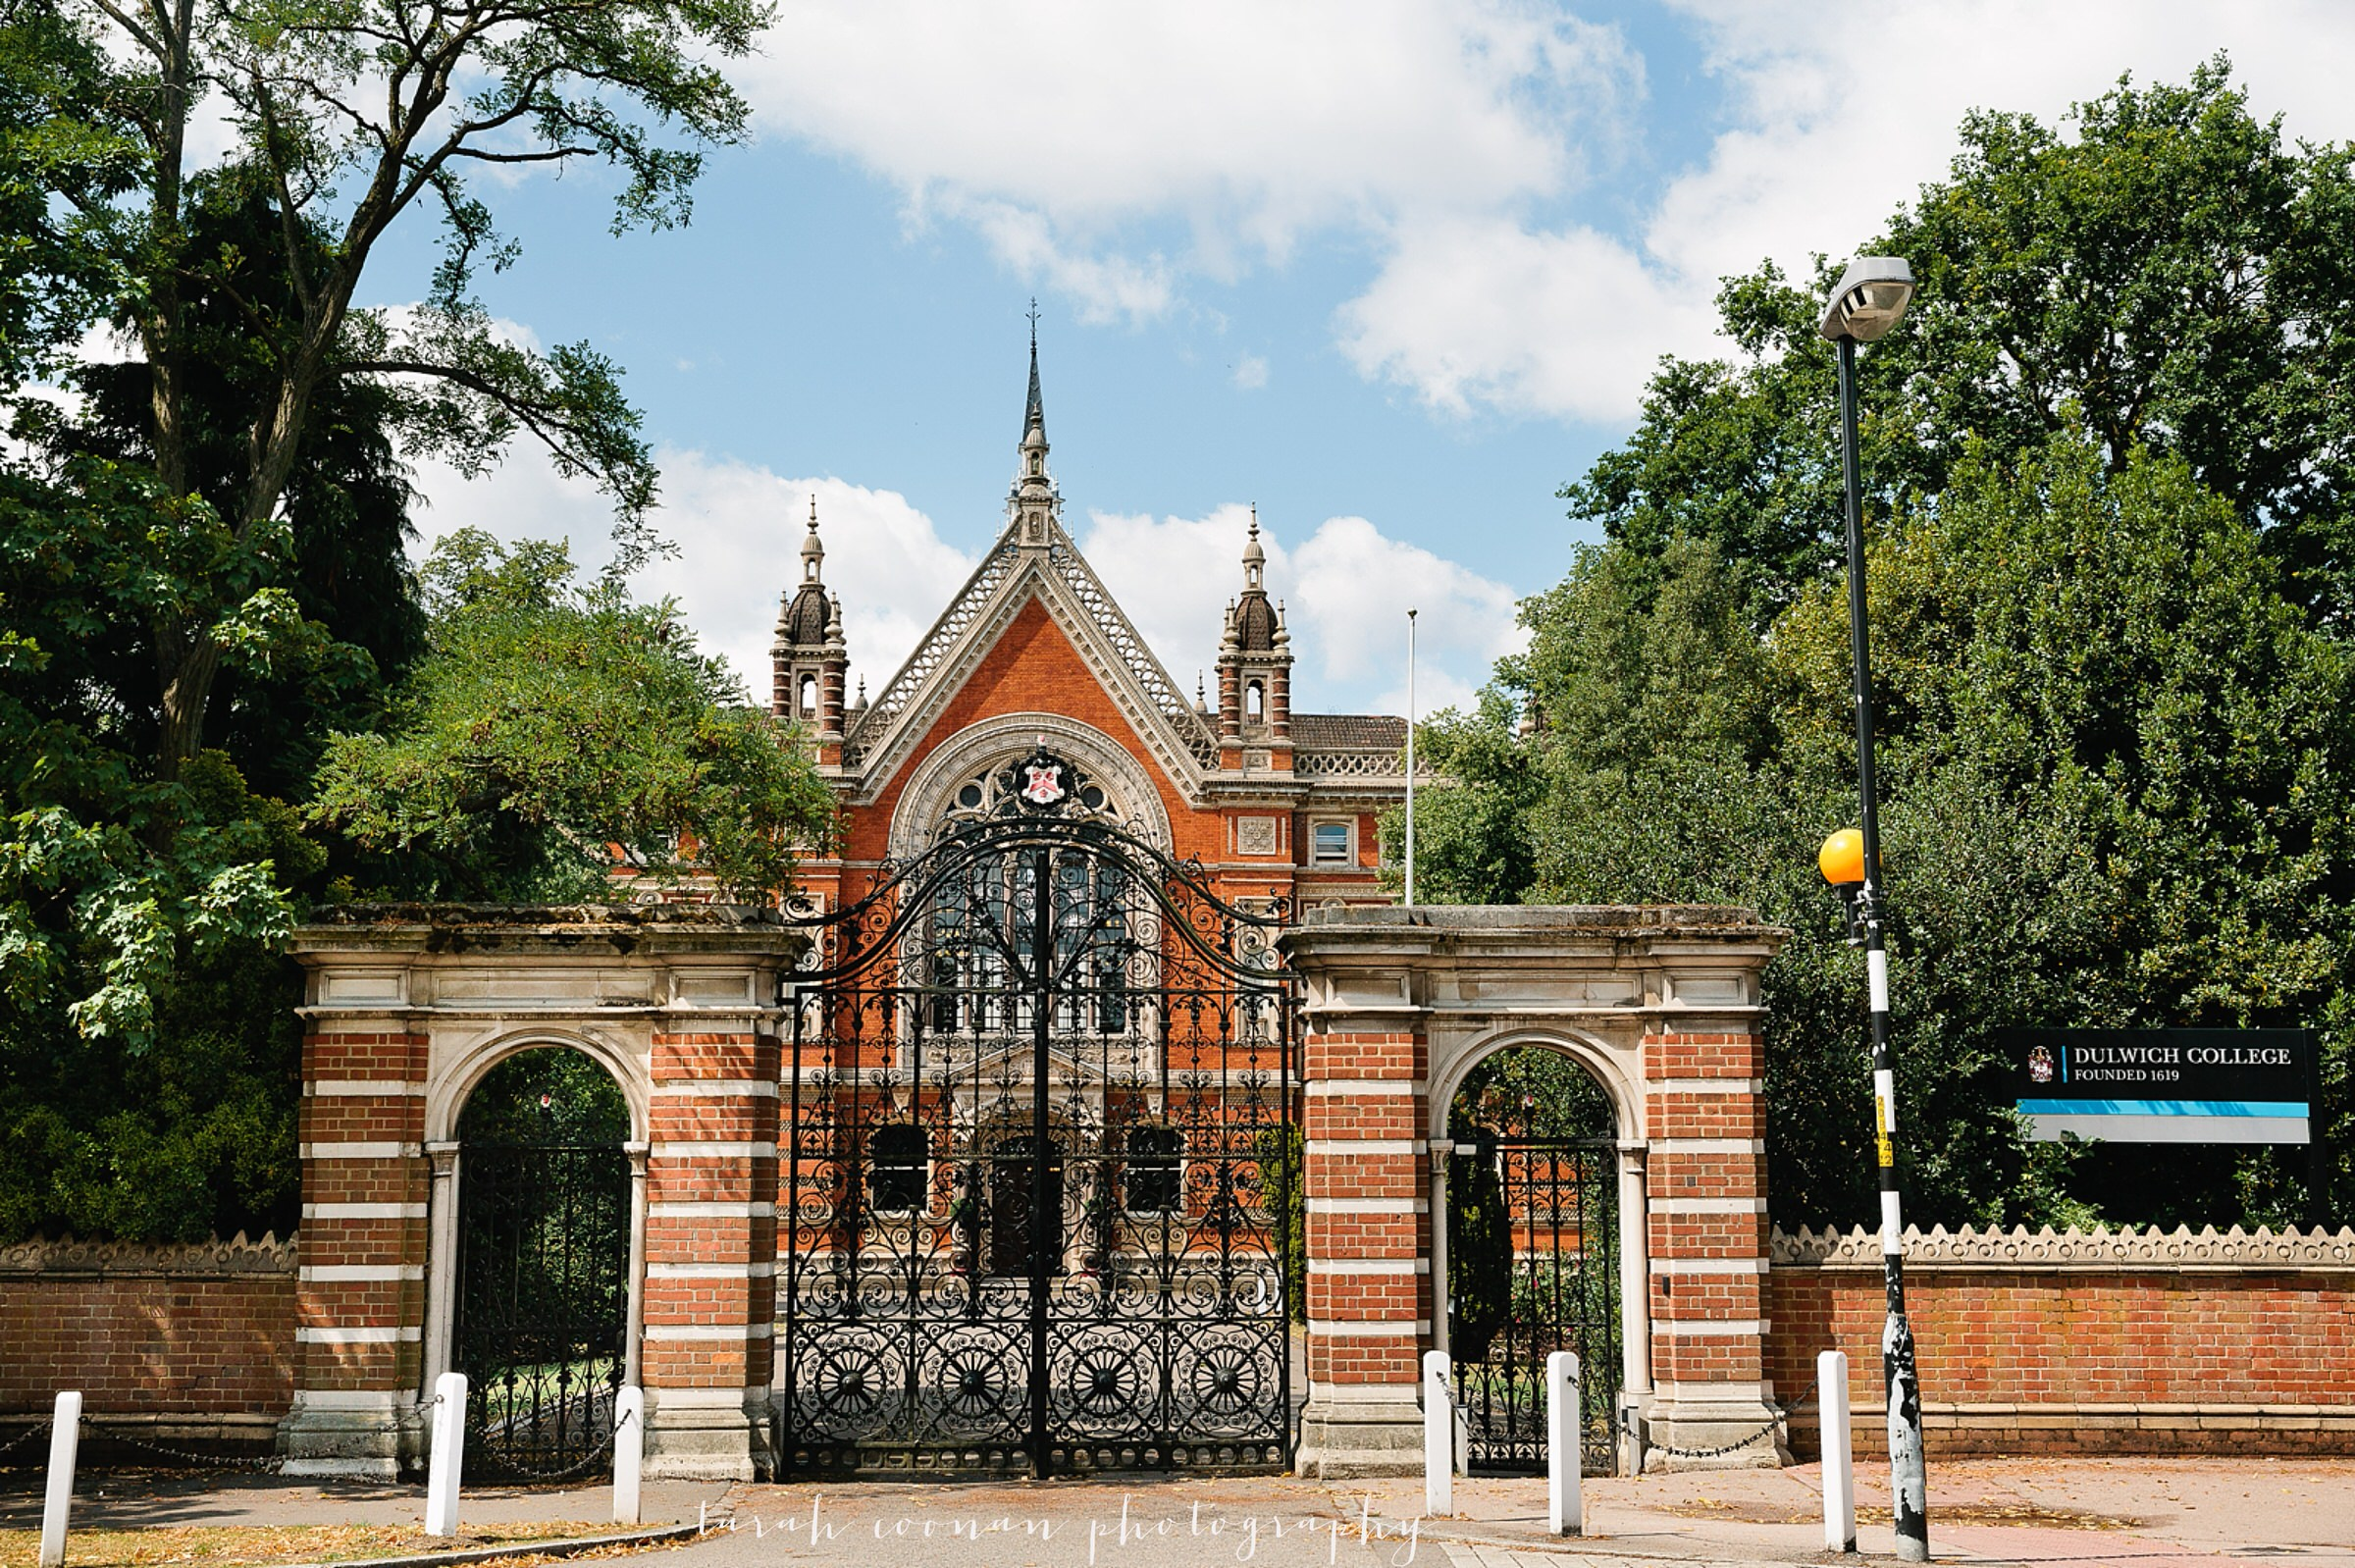 dulwich college school